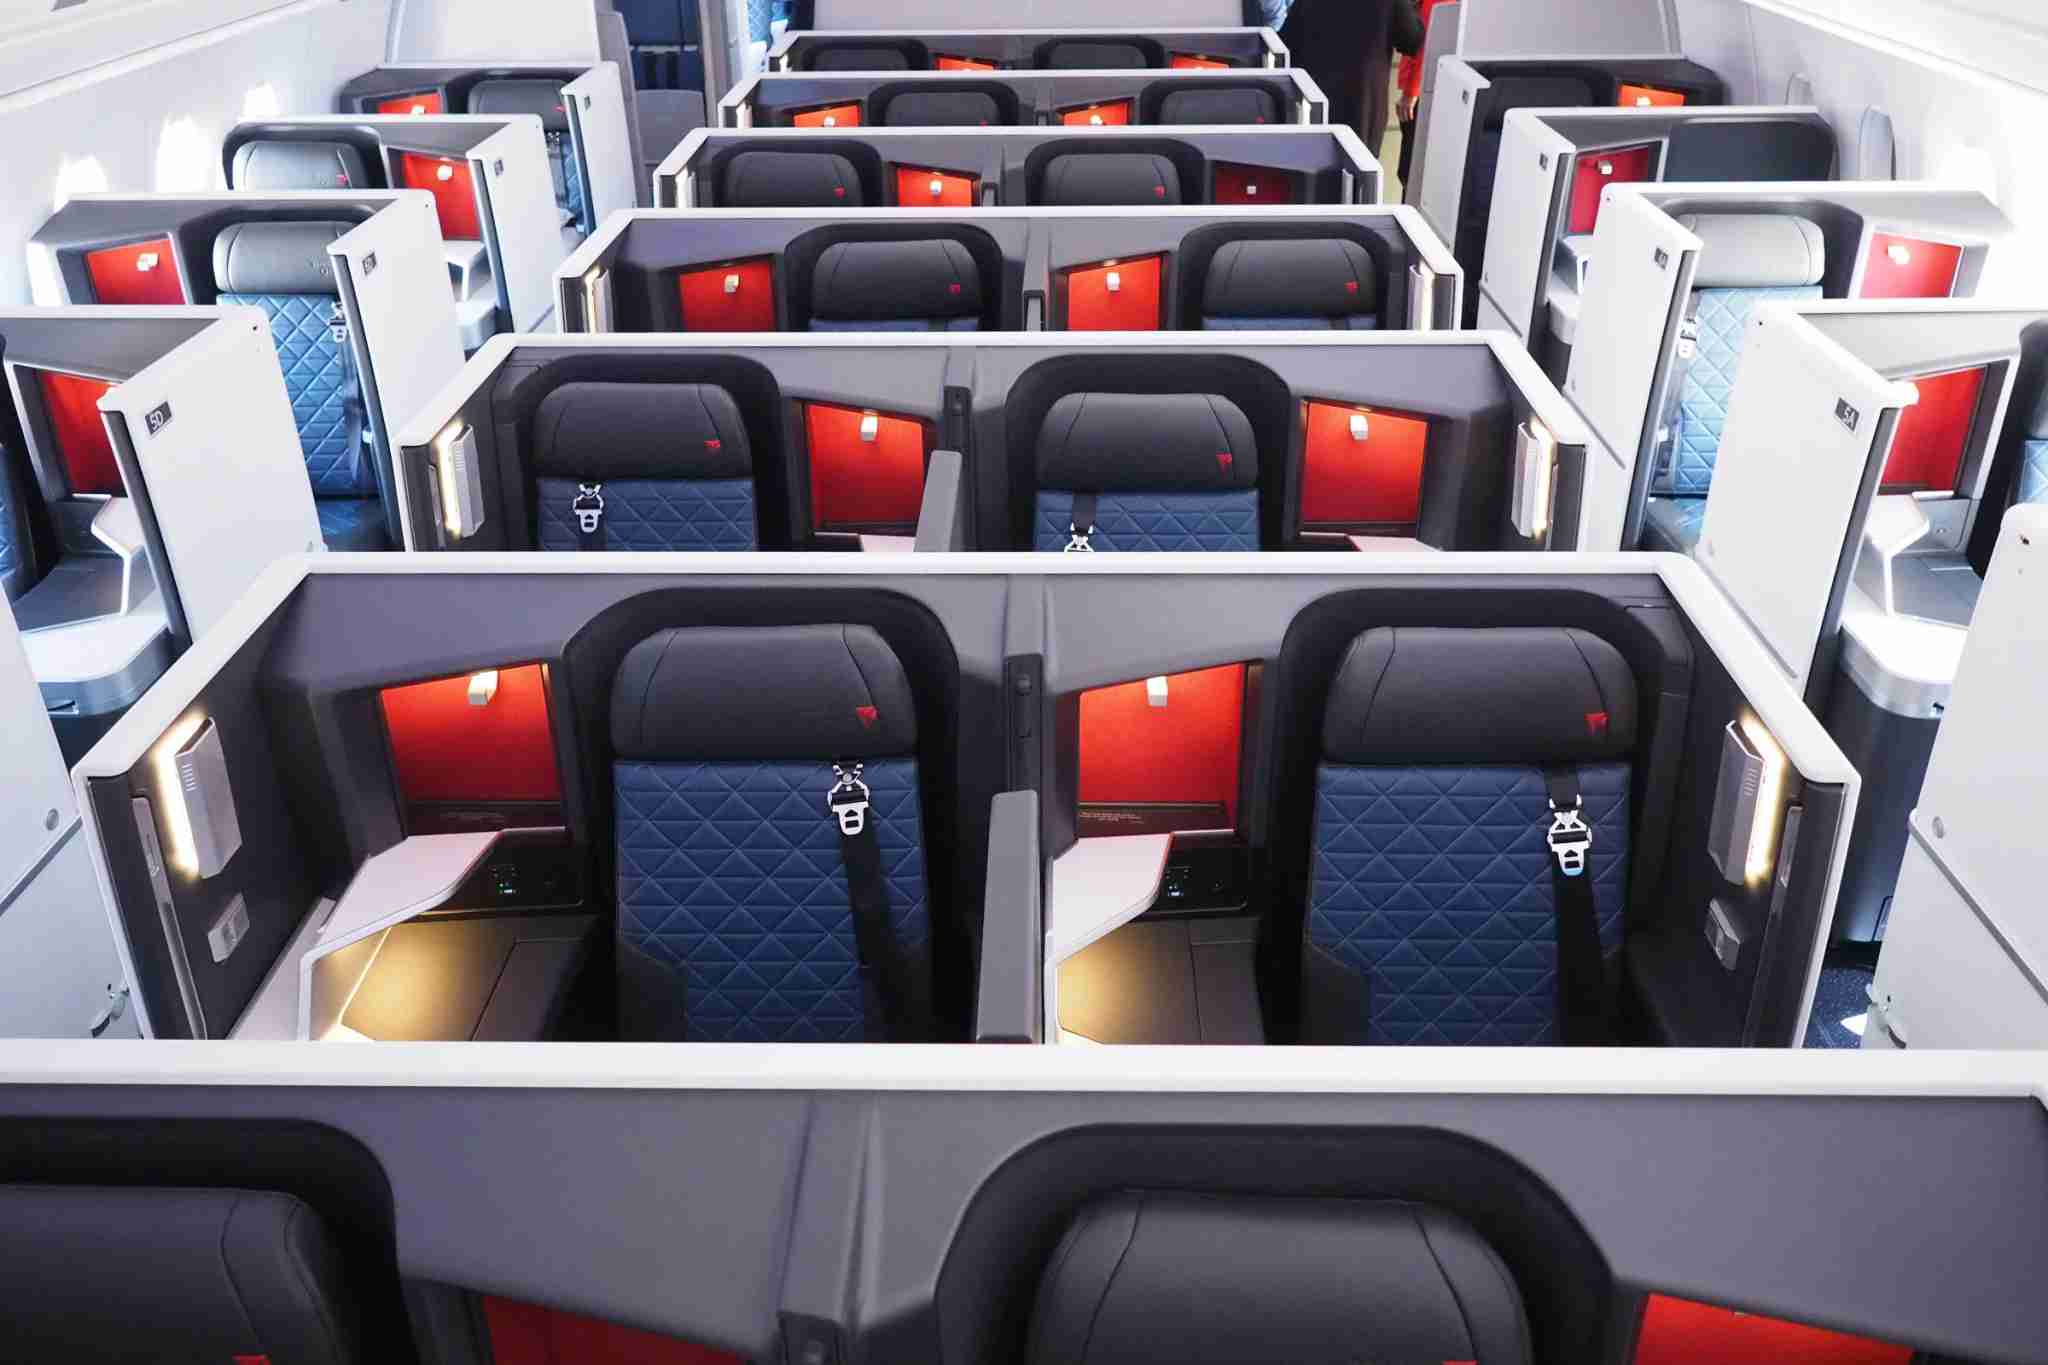 Fly Delta in style (Photo by Zach Honig/TPG)